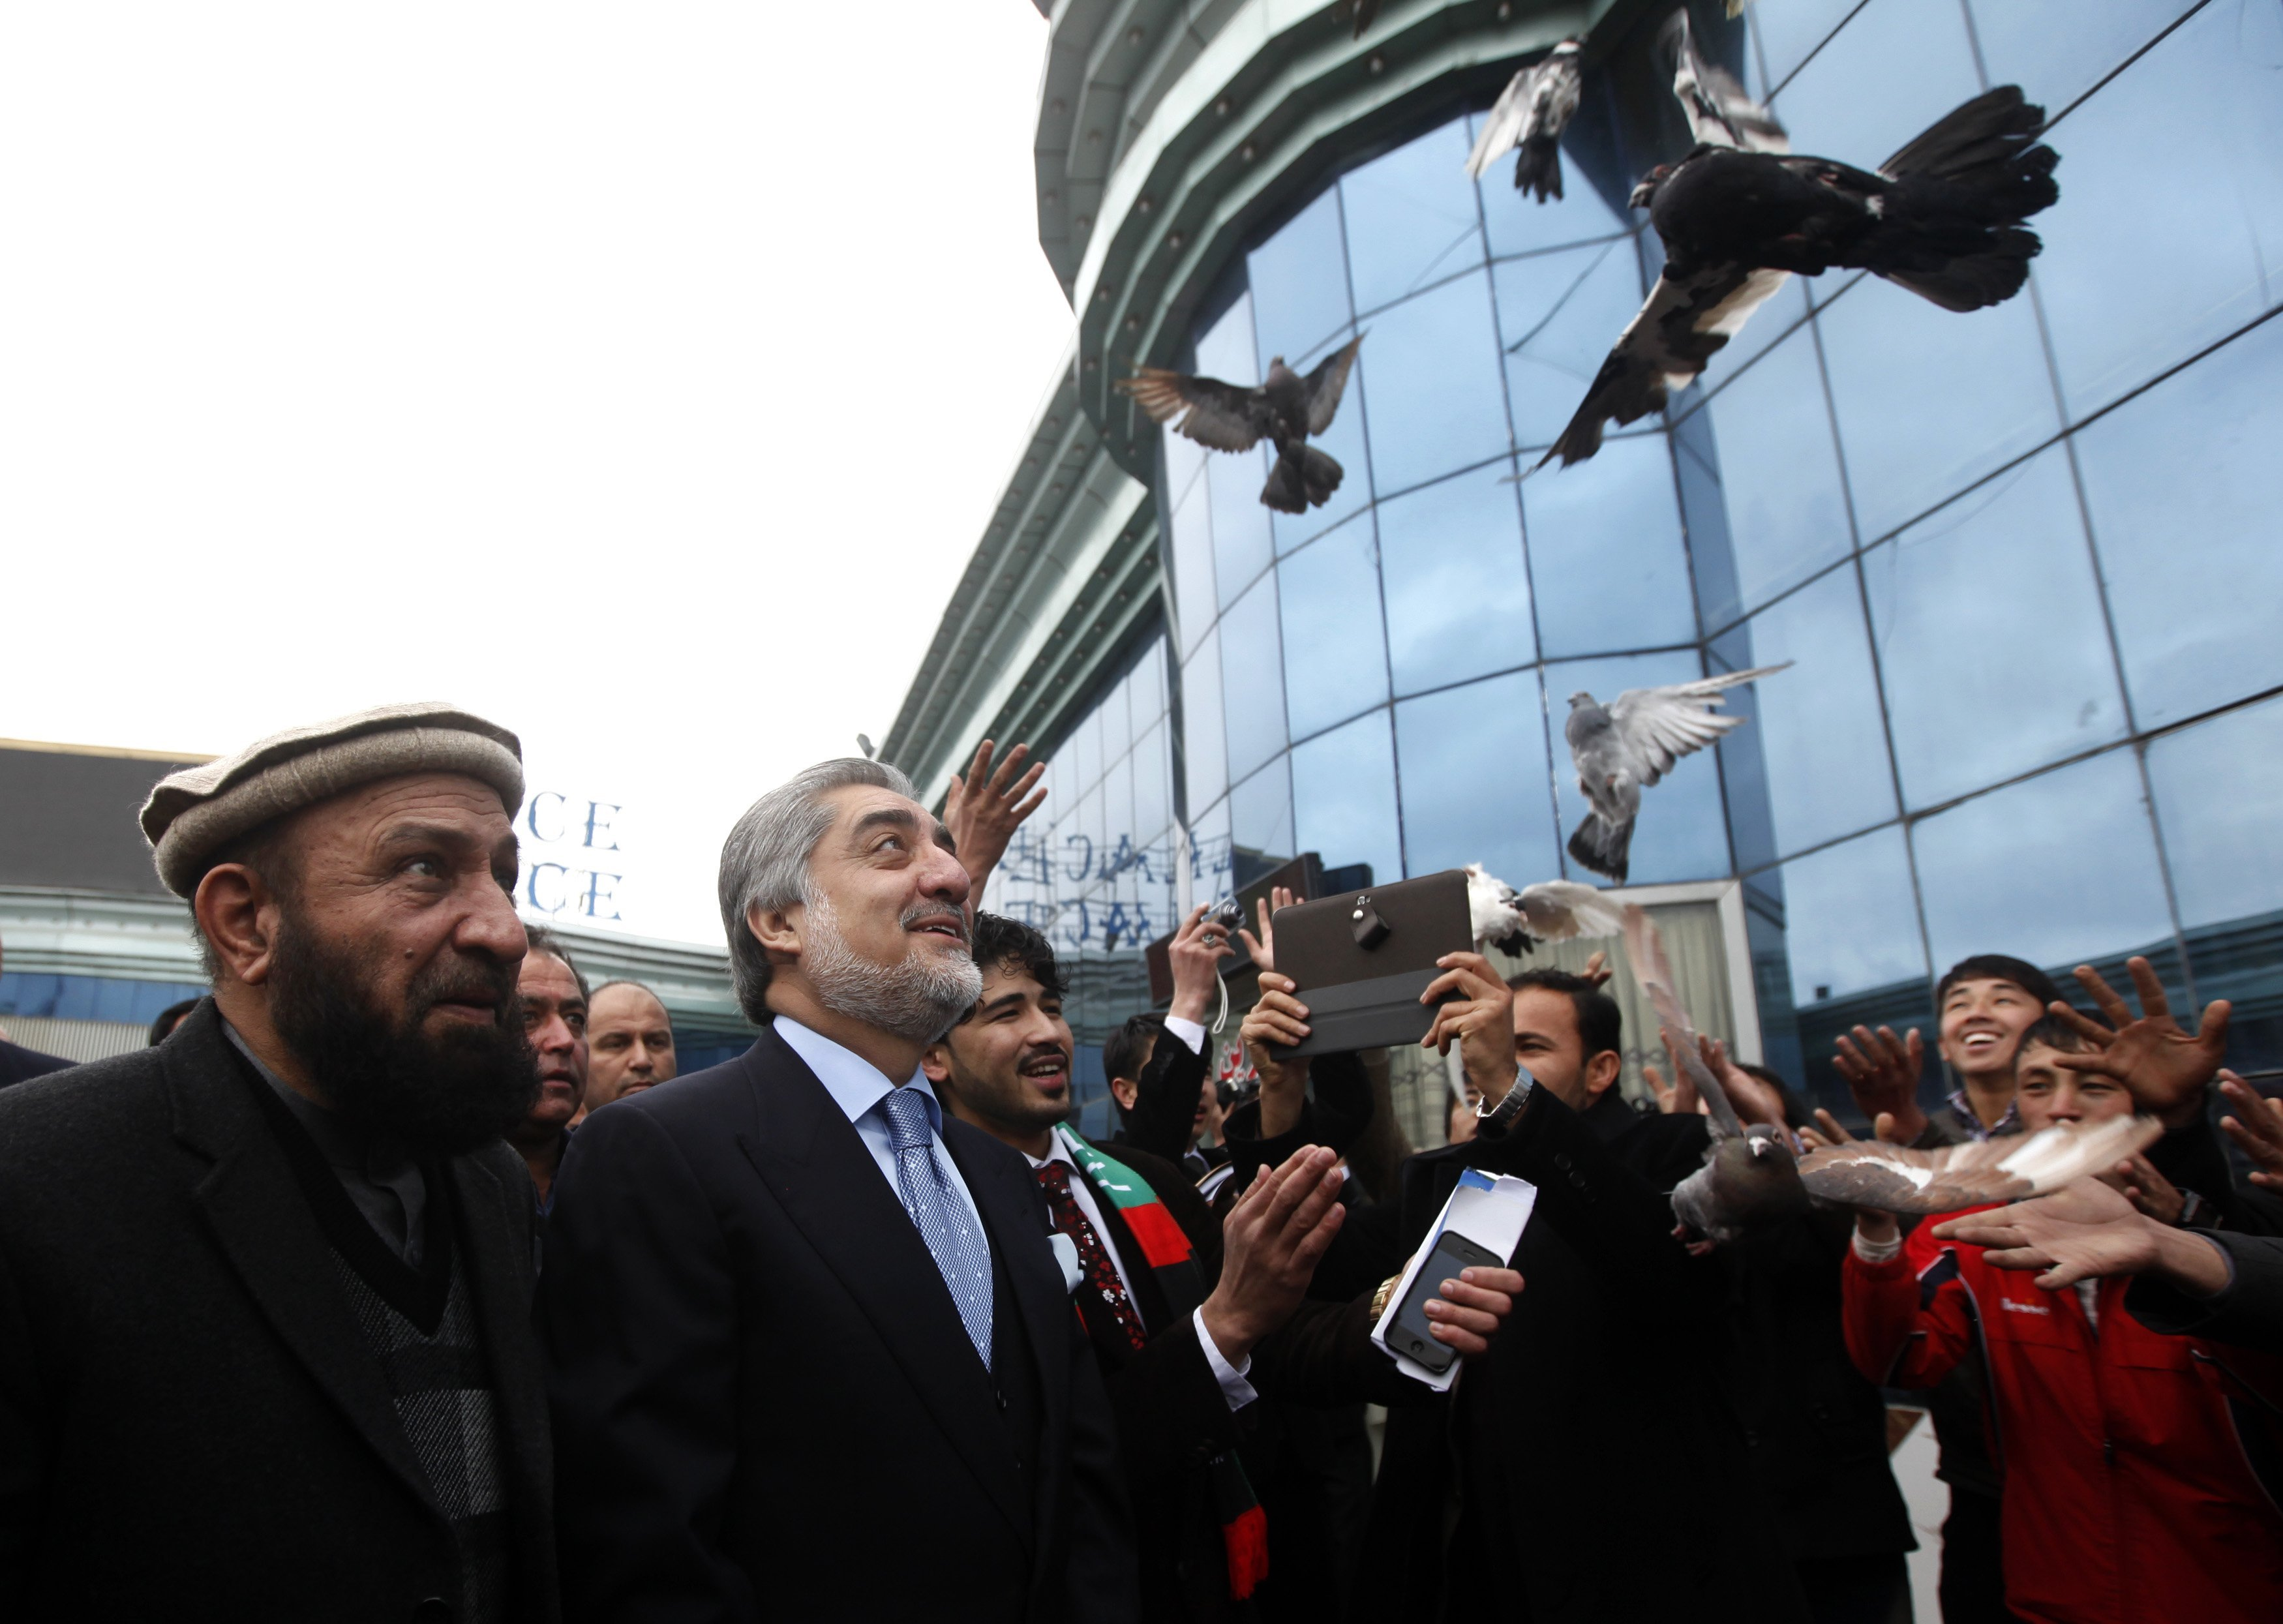 Supporters of Afghan presidential candidate Abdullah Abdullah release pigeons during the first day of the presidential election campaign in Kabul.